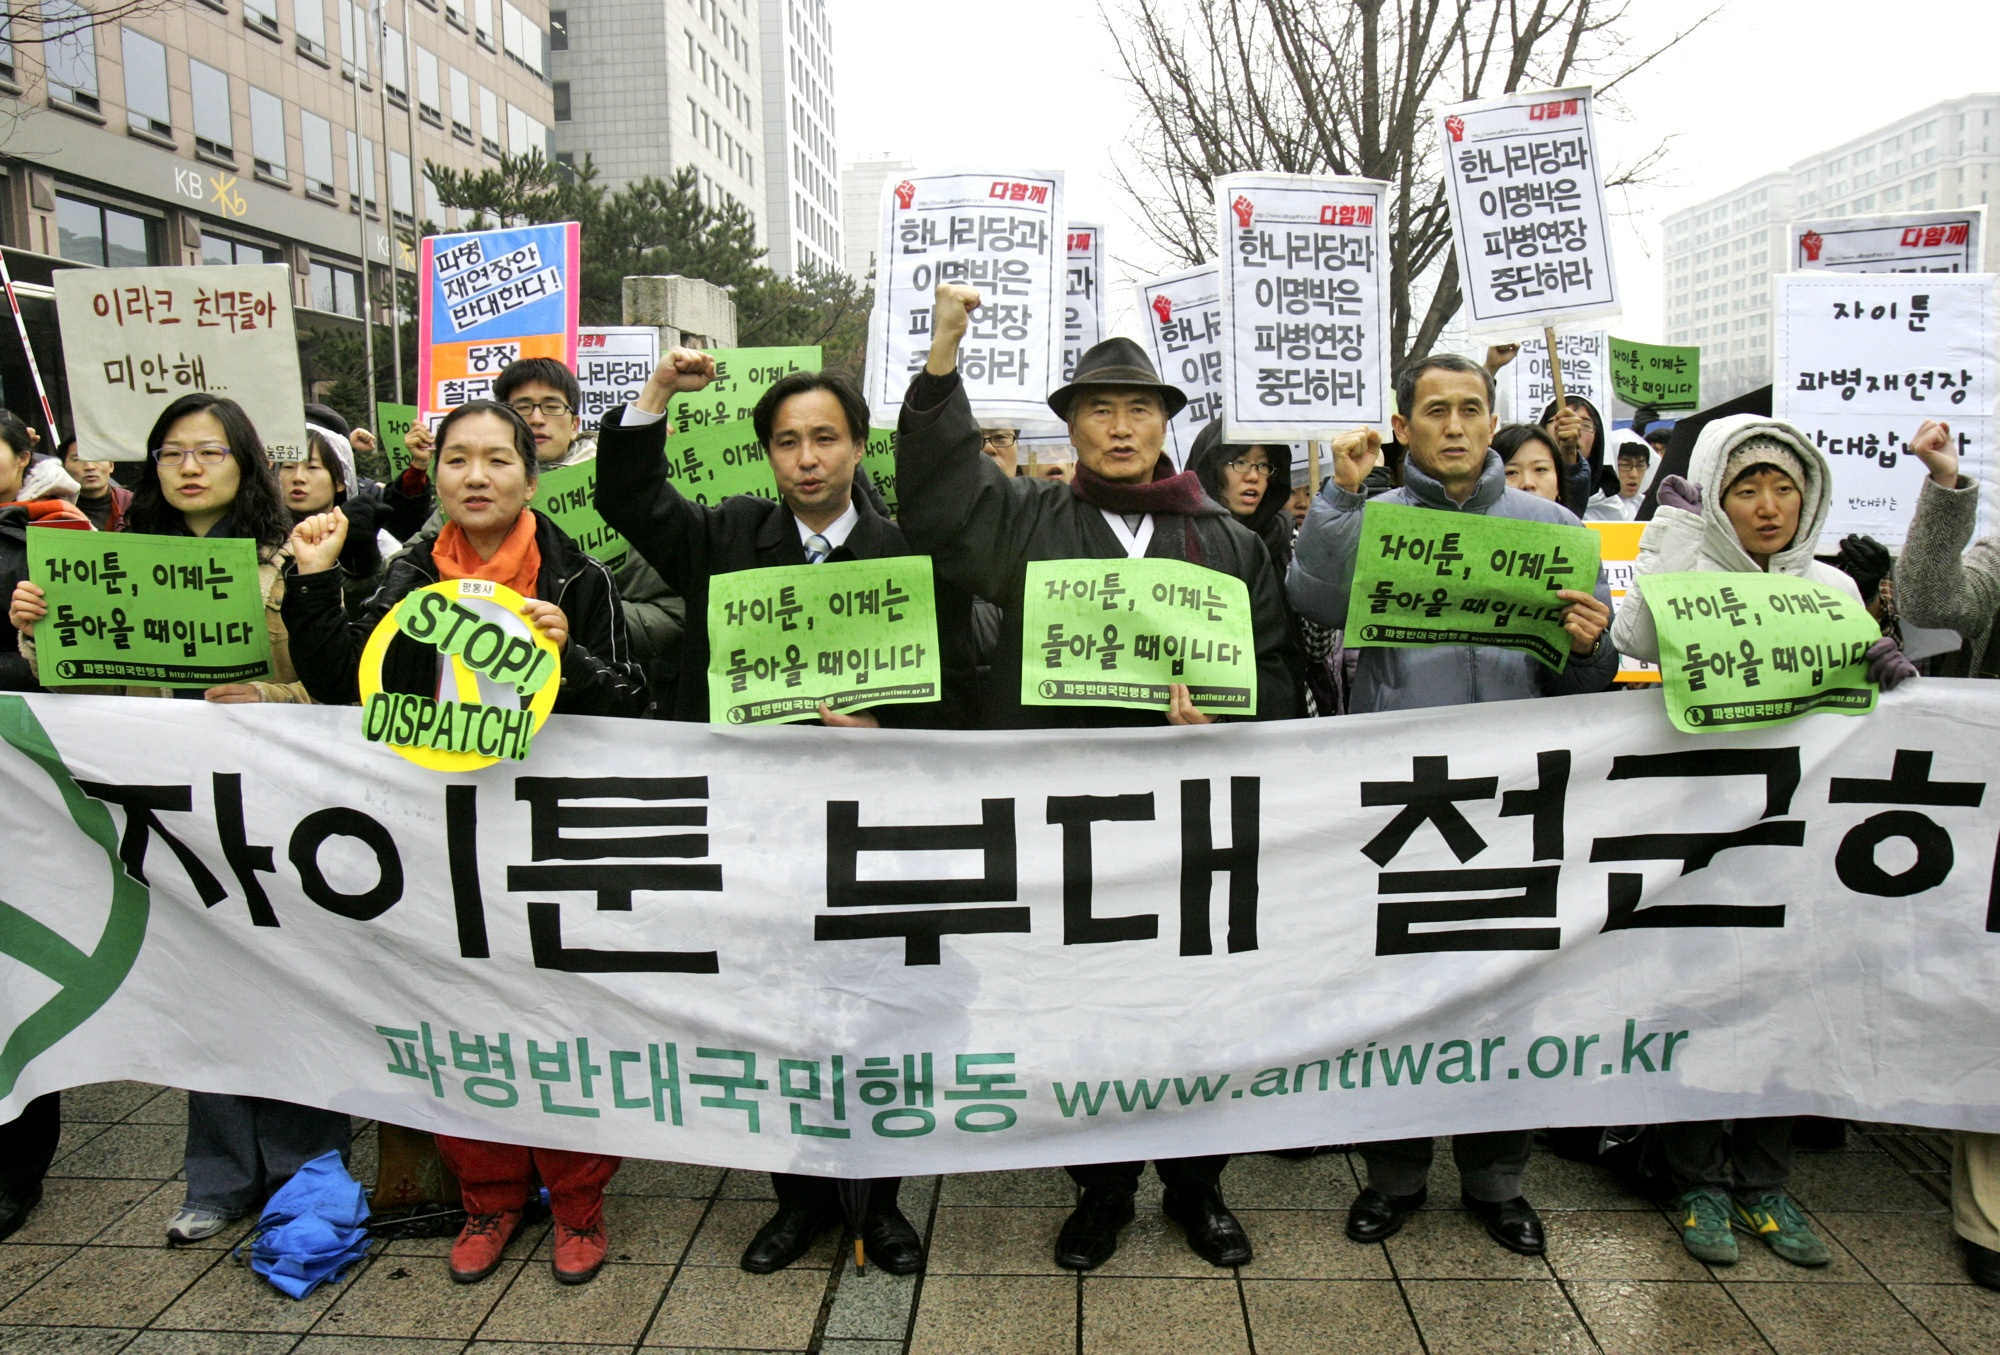 South Korean protesters stage a rally demanding the withdrawal of South Korean troops from Iraq, near the National Assembly in Seoul, South Korea yest...